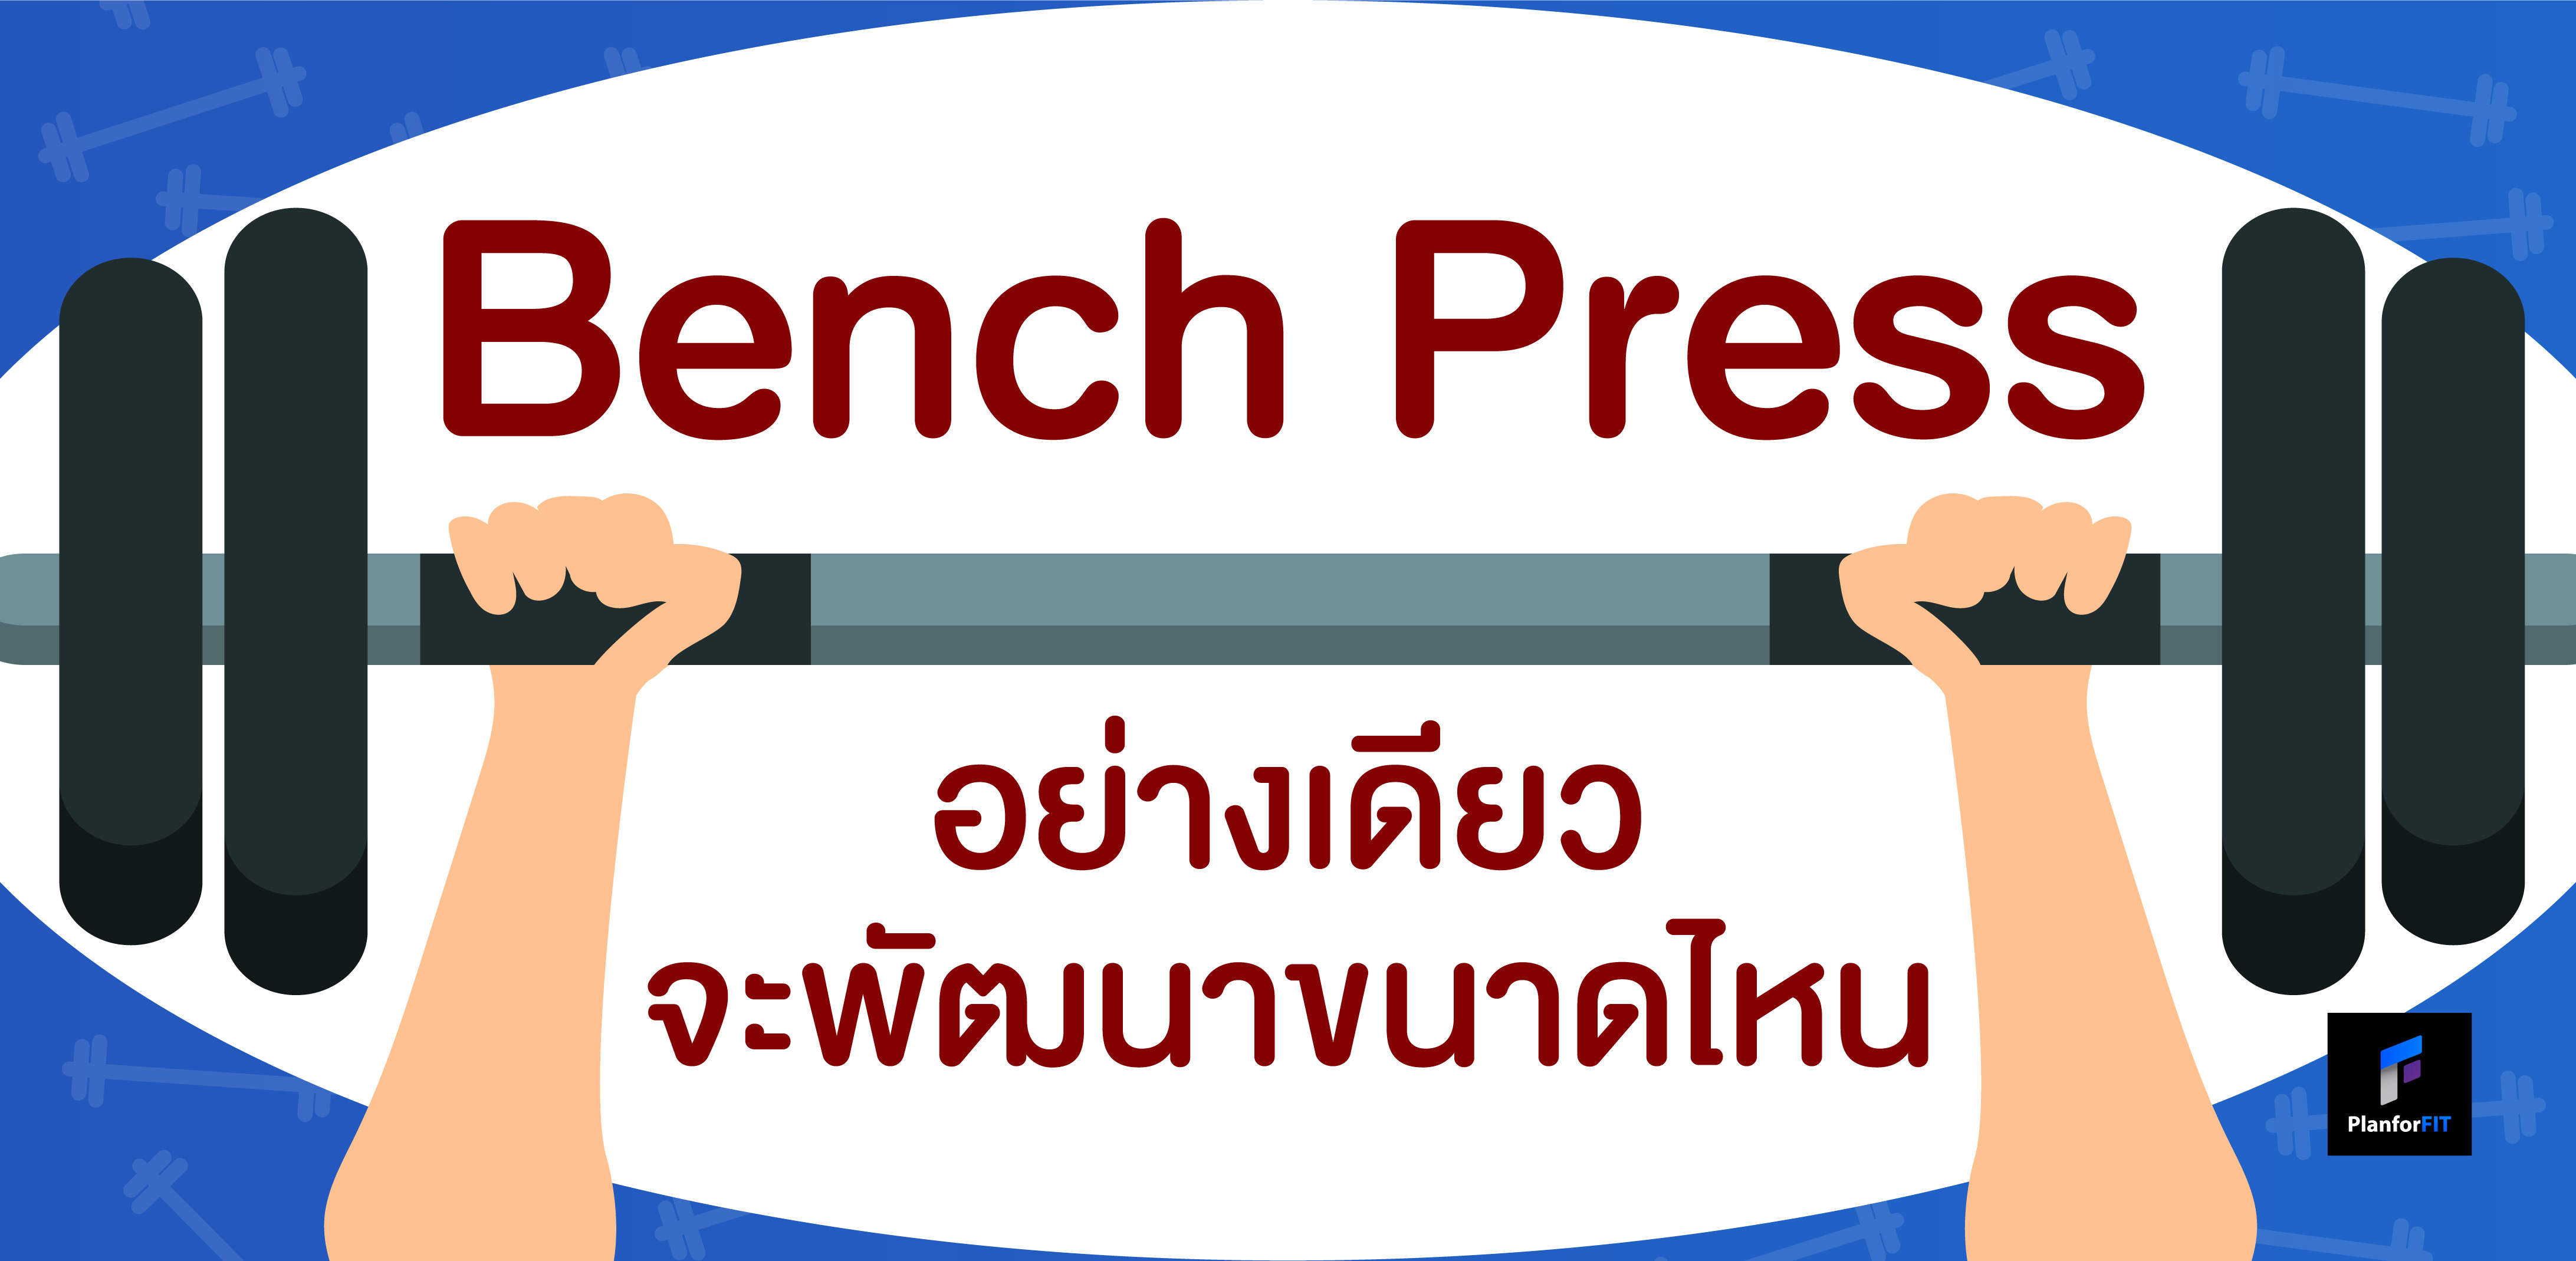 401_Brench Press-01